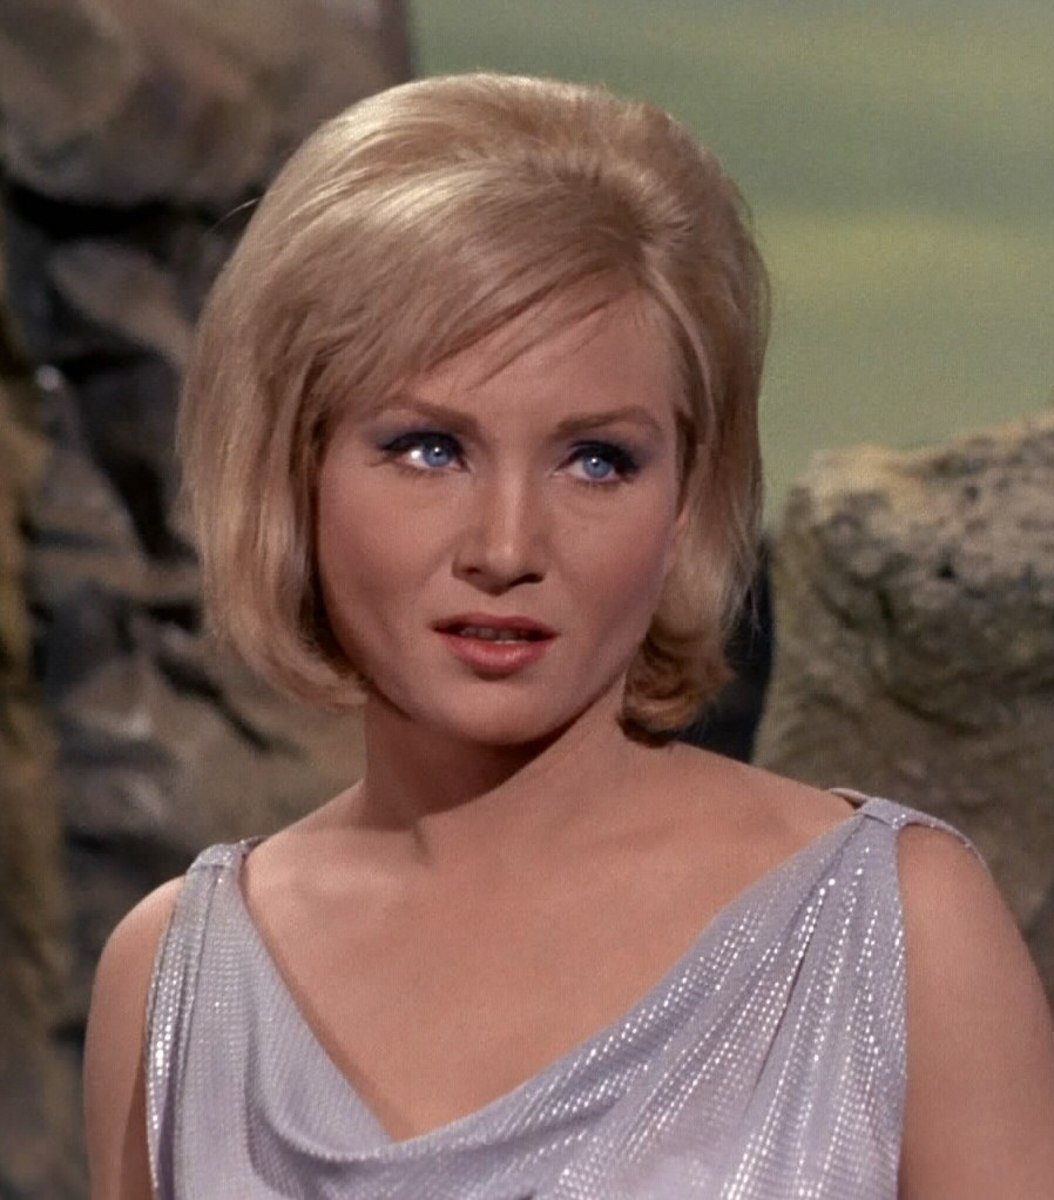 Susan Oliver plays Vina, a young woman injured in a crash on Talos IV